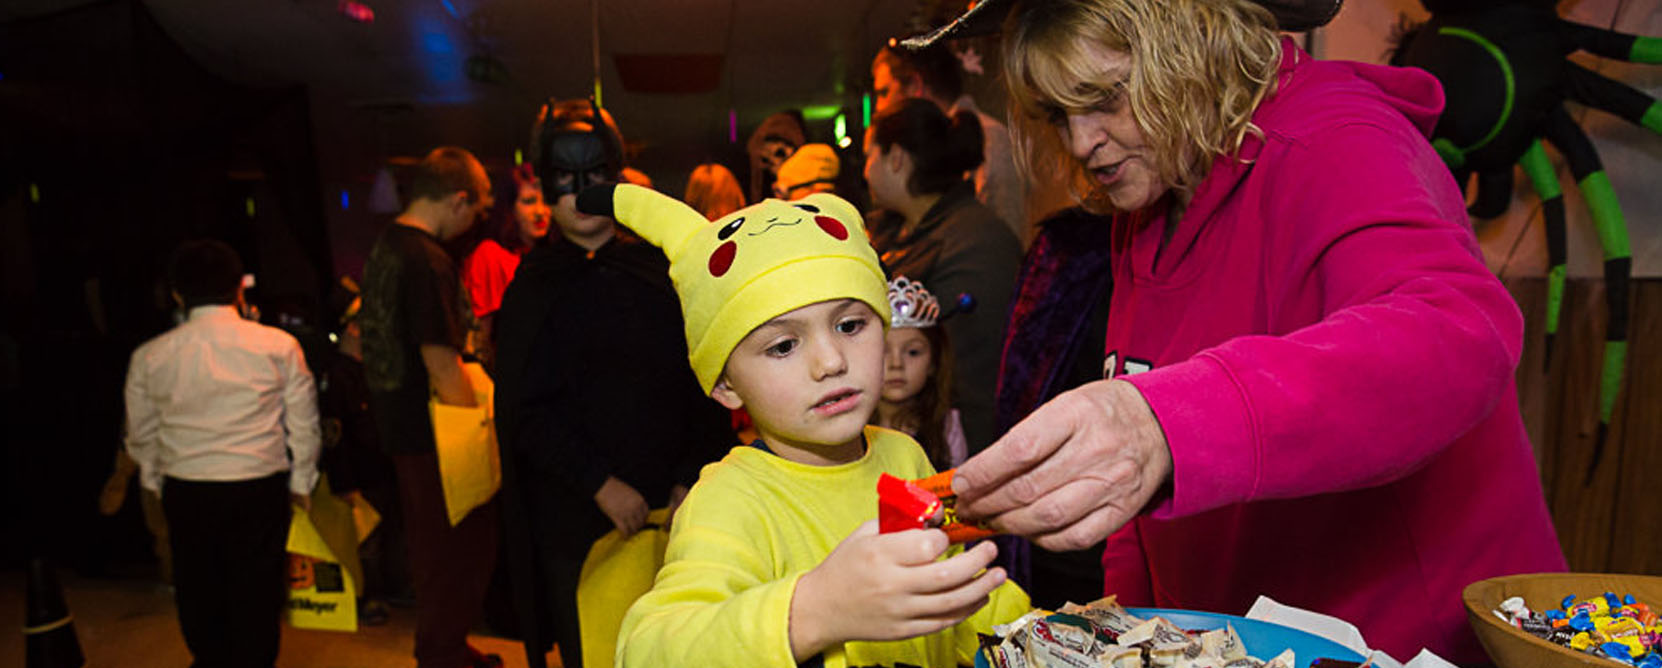 A woman and two children in costume at a Halloween Party